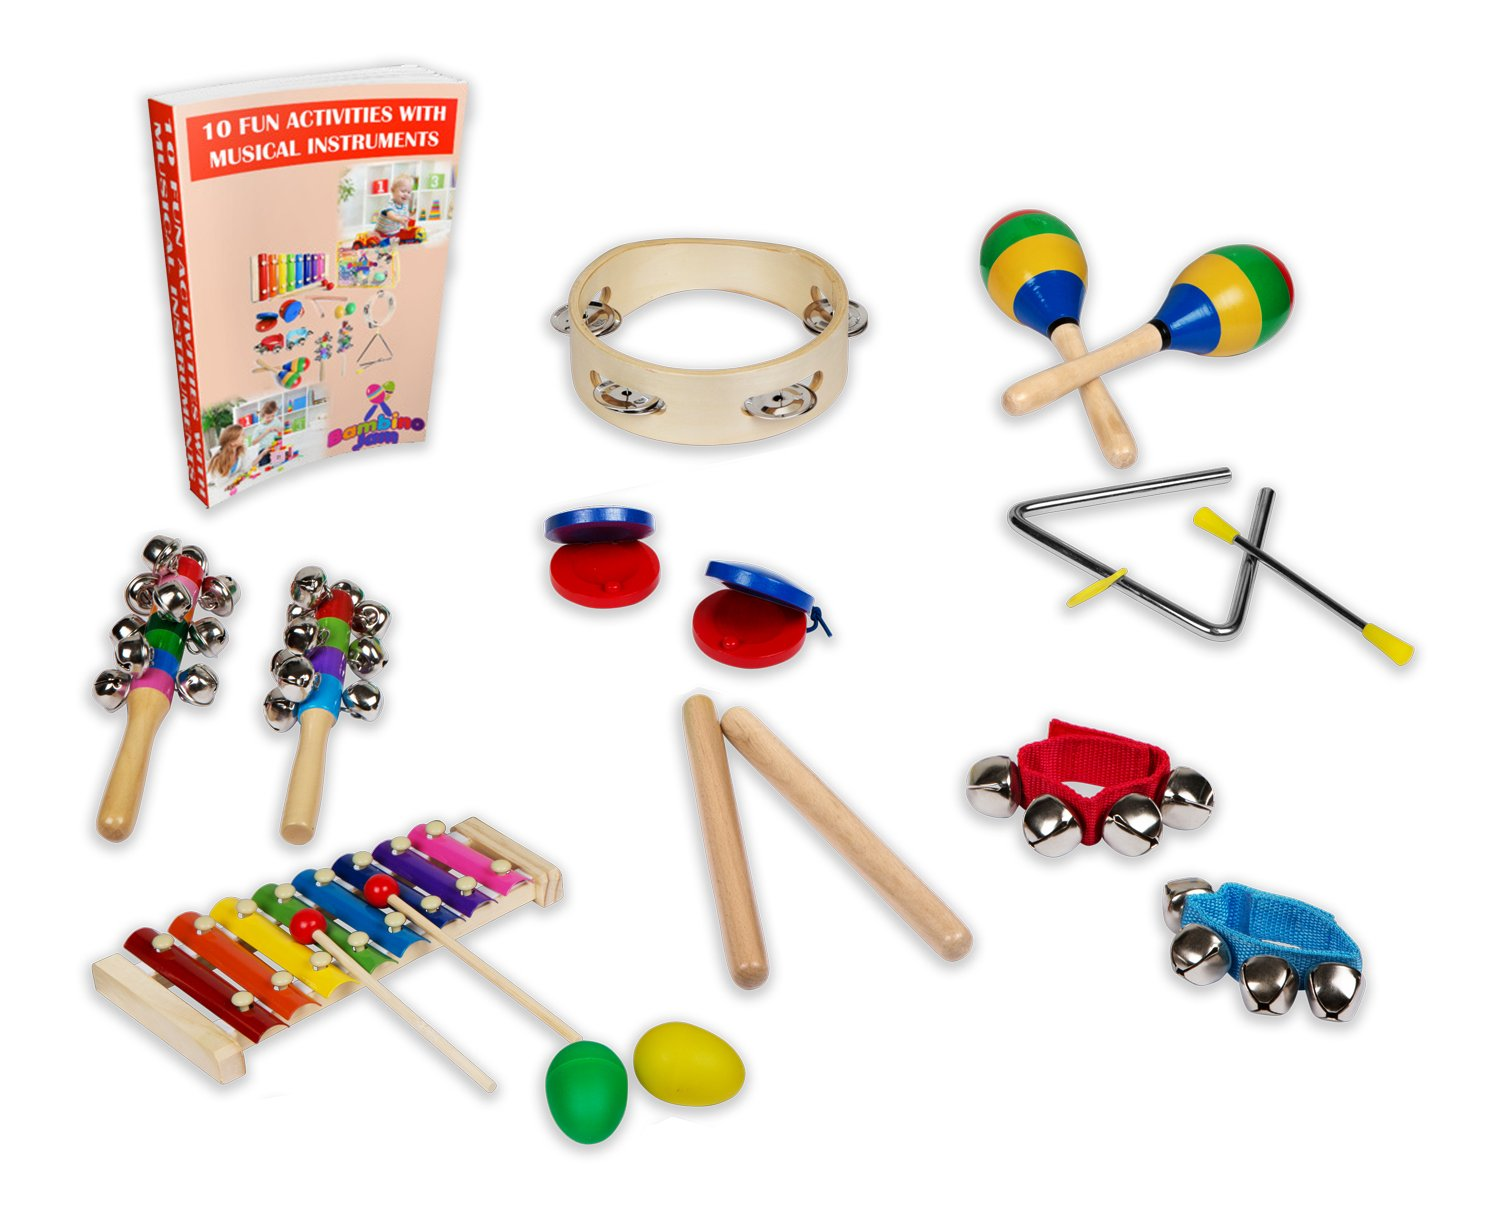 Musical Instruments Set for Toddler & Preschooler 15 Pcs Wooden Montessori Educational Learning Toys for Young Children Percussion Rhythm Band Gift Set with Xylophone, Tambourine & Free Carry Bag